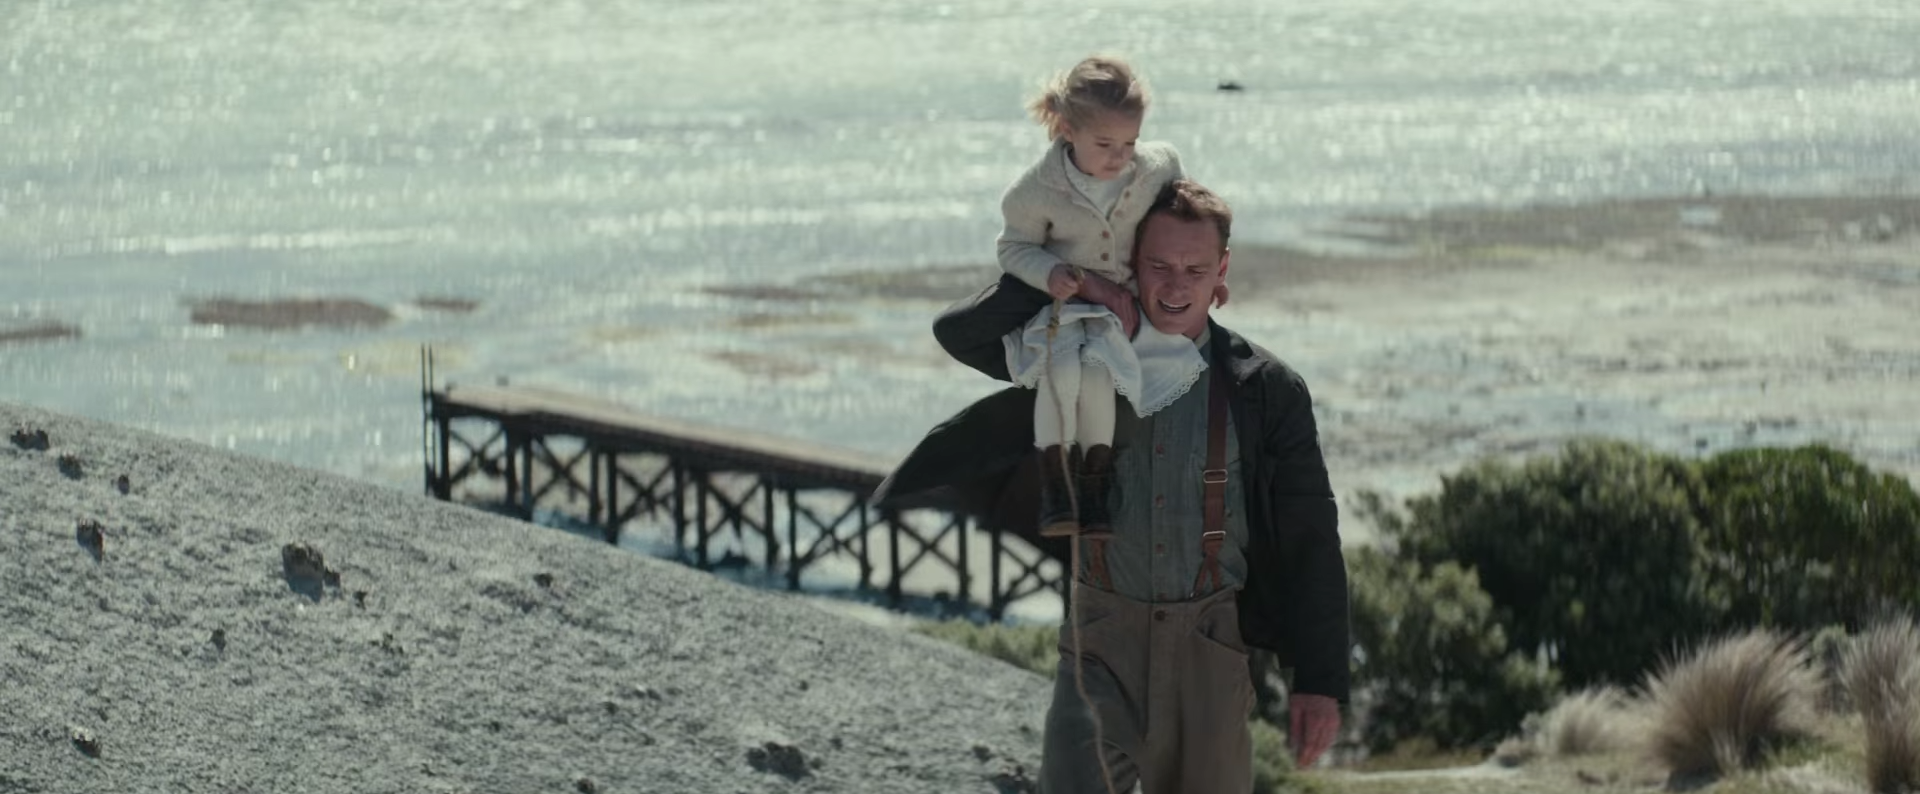 the-light-between-oceans-movie-images-alicia-vikander-michael-fassbender6.png